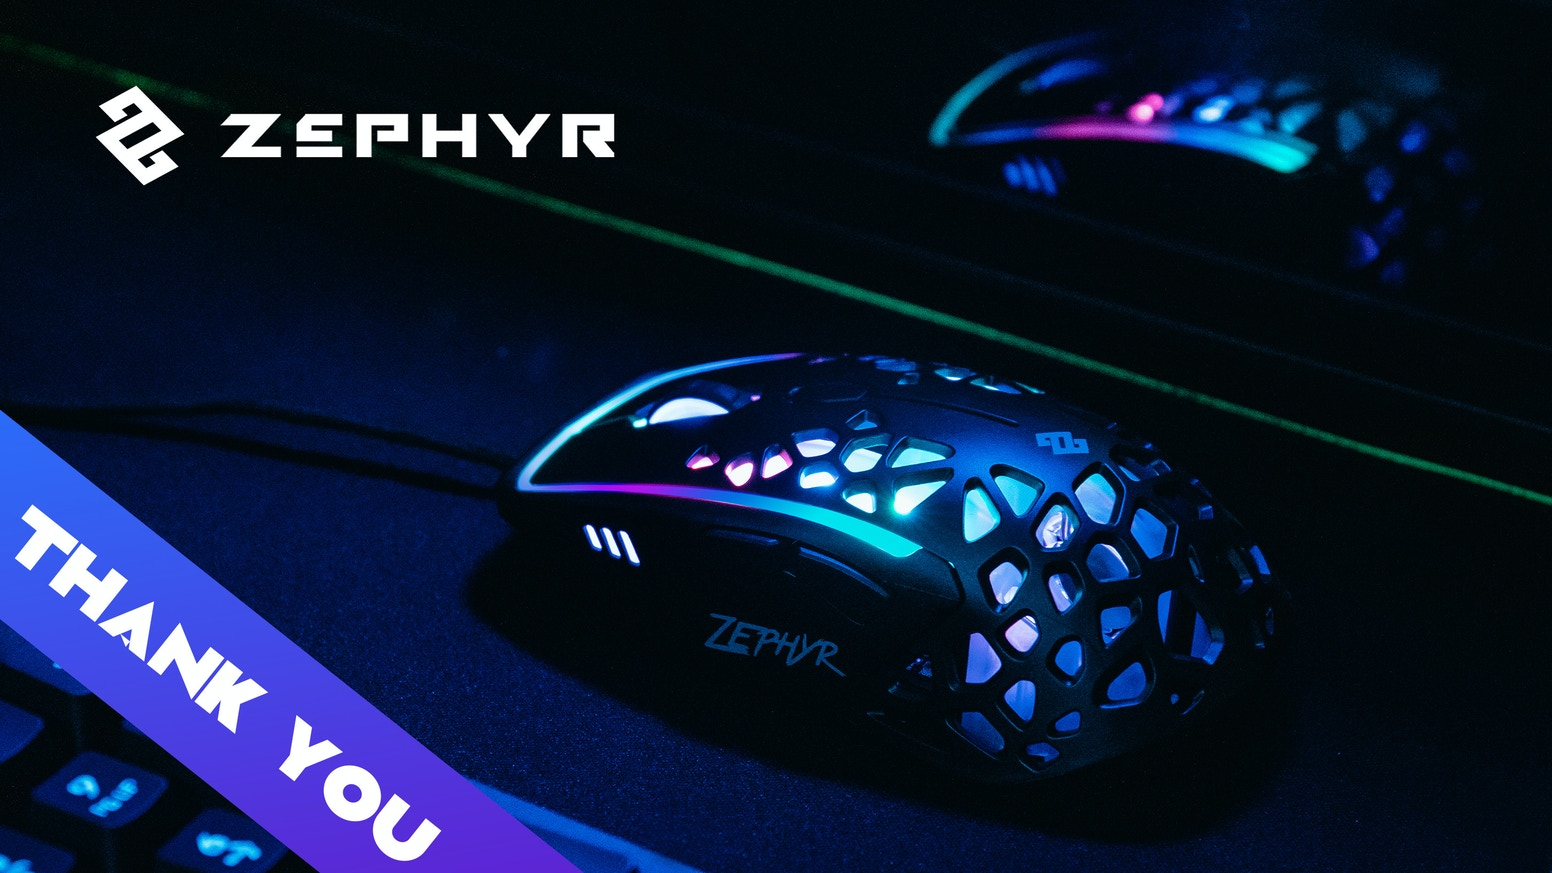 | Cools your hand | RGB lighting | 16,000 DPI Pixart 3389 | OMRON switches | Lightweight 68 grams | Paracord cable | Ergonomic design |